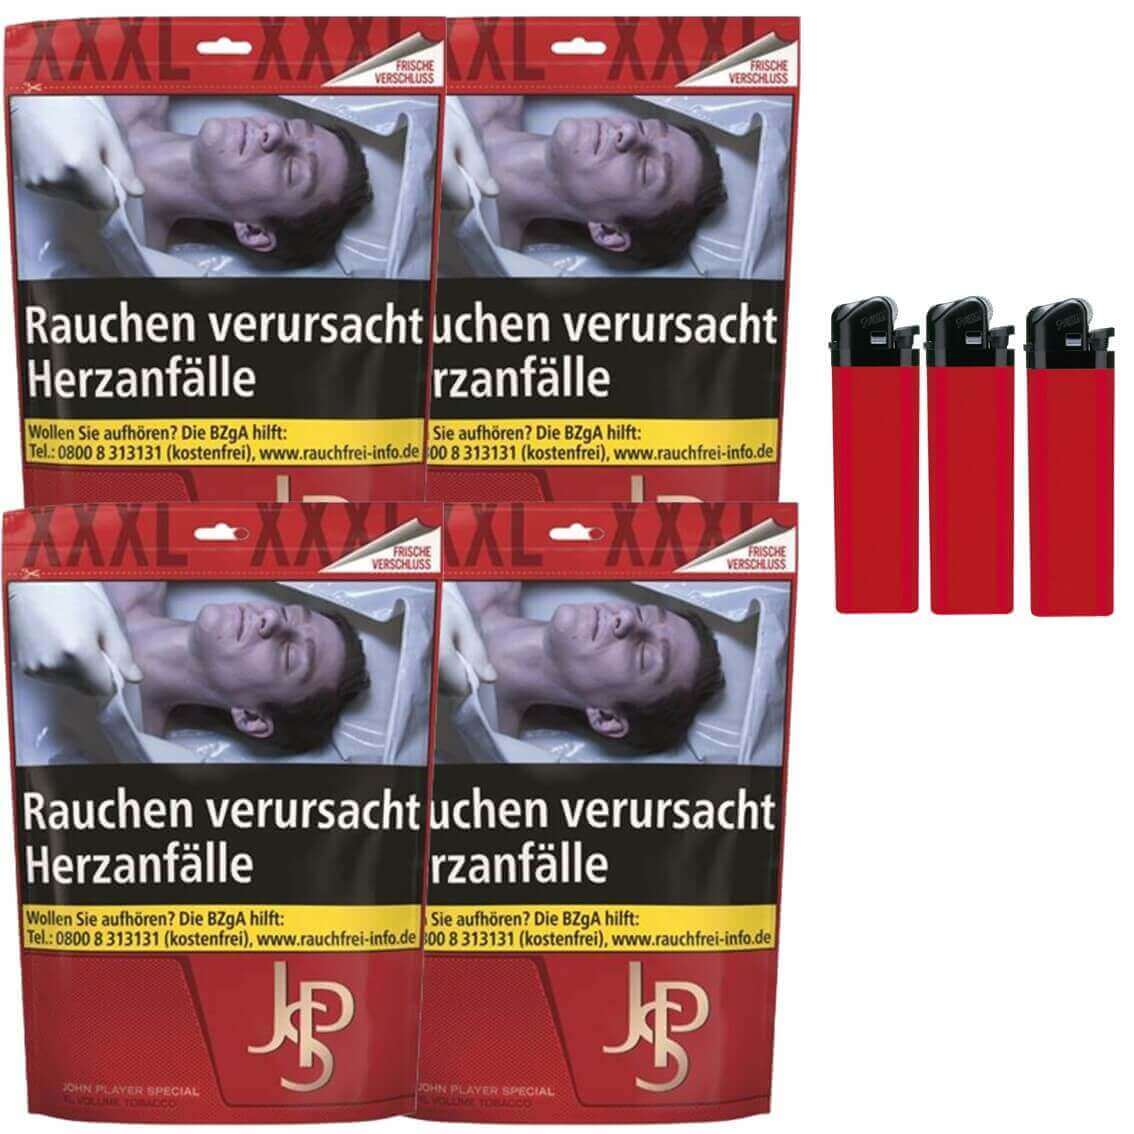 JPS John Player Mega Box 4 x 100g Volumentabak Feuerzeuge